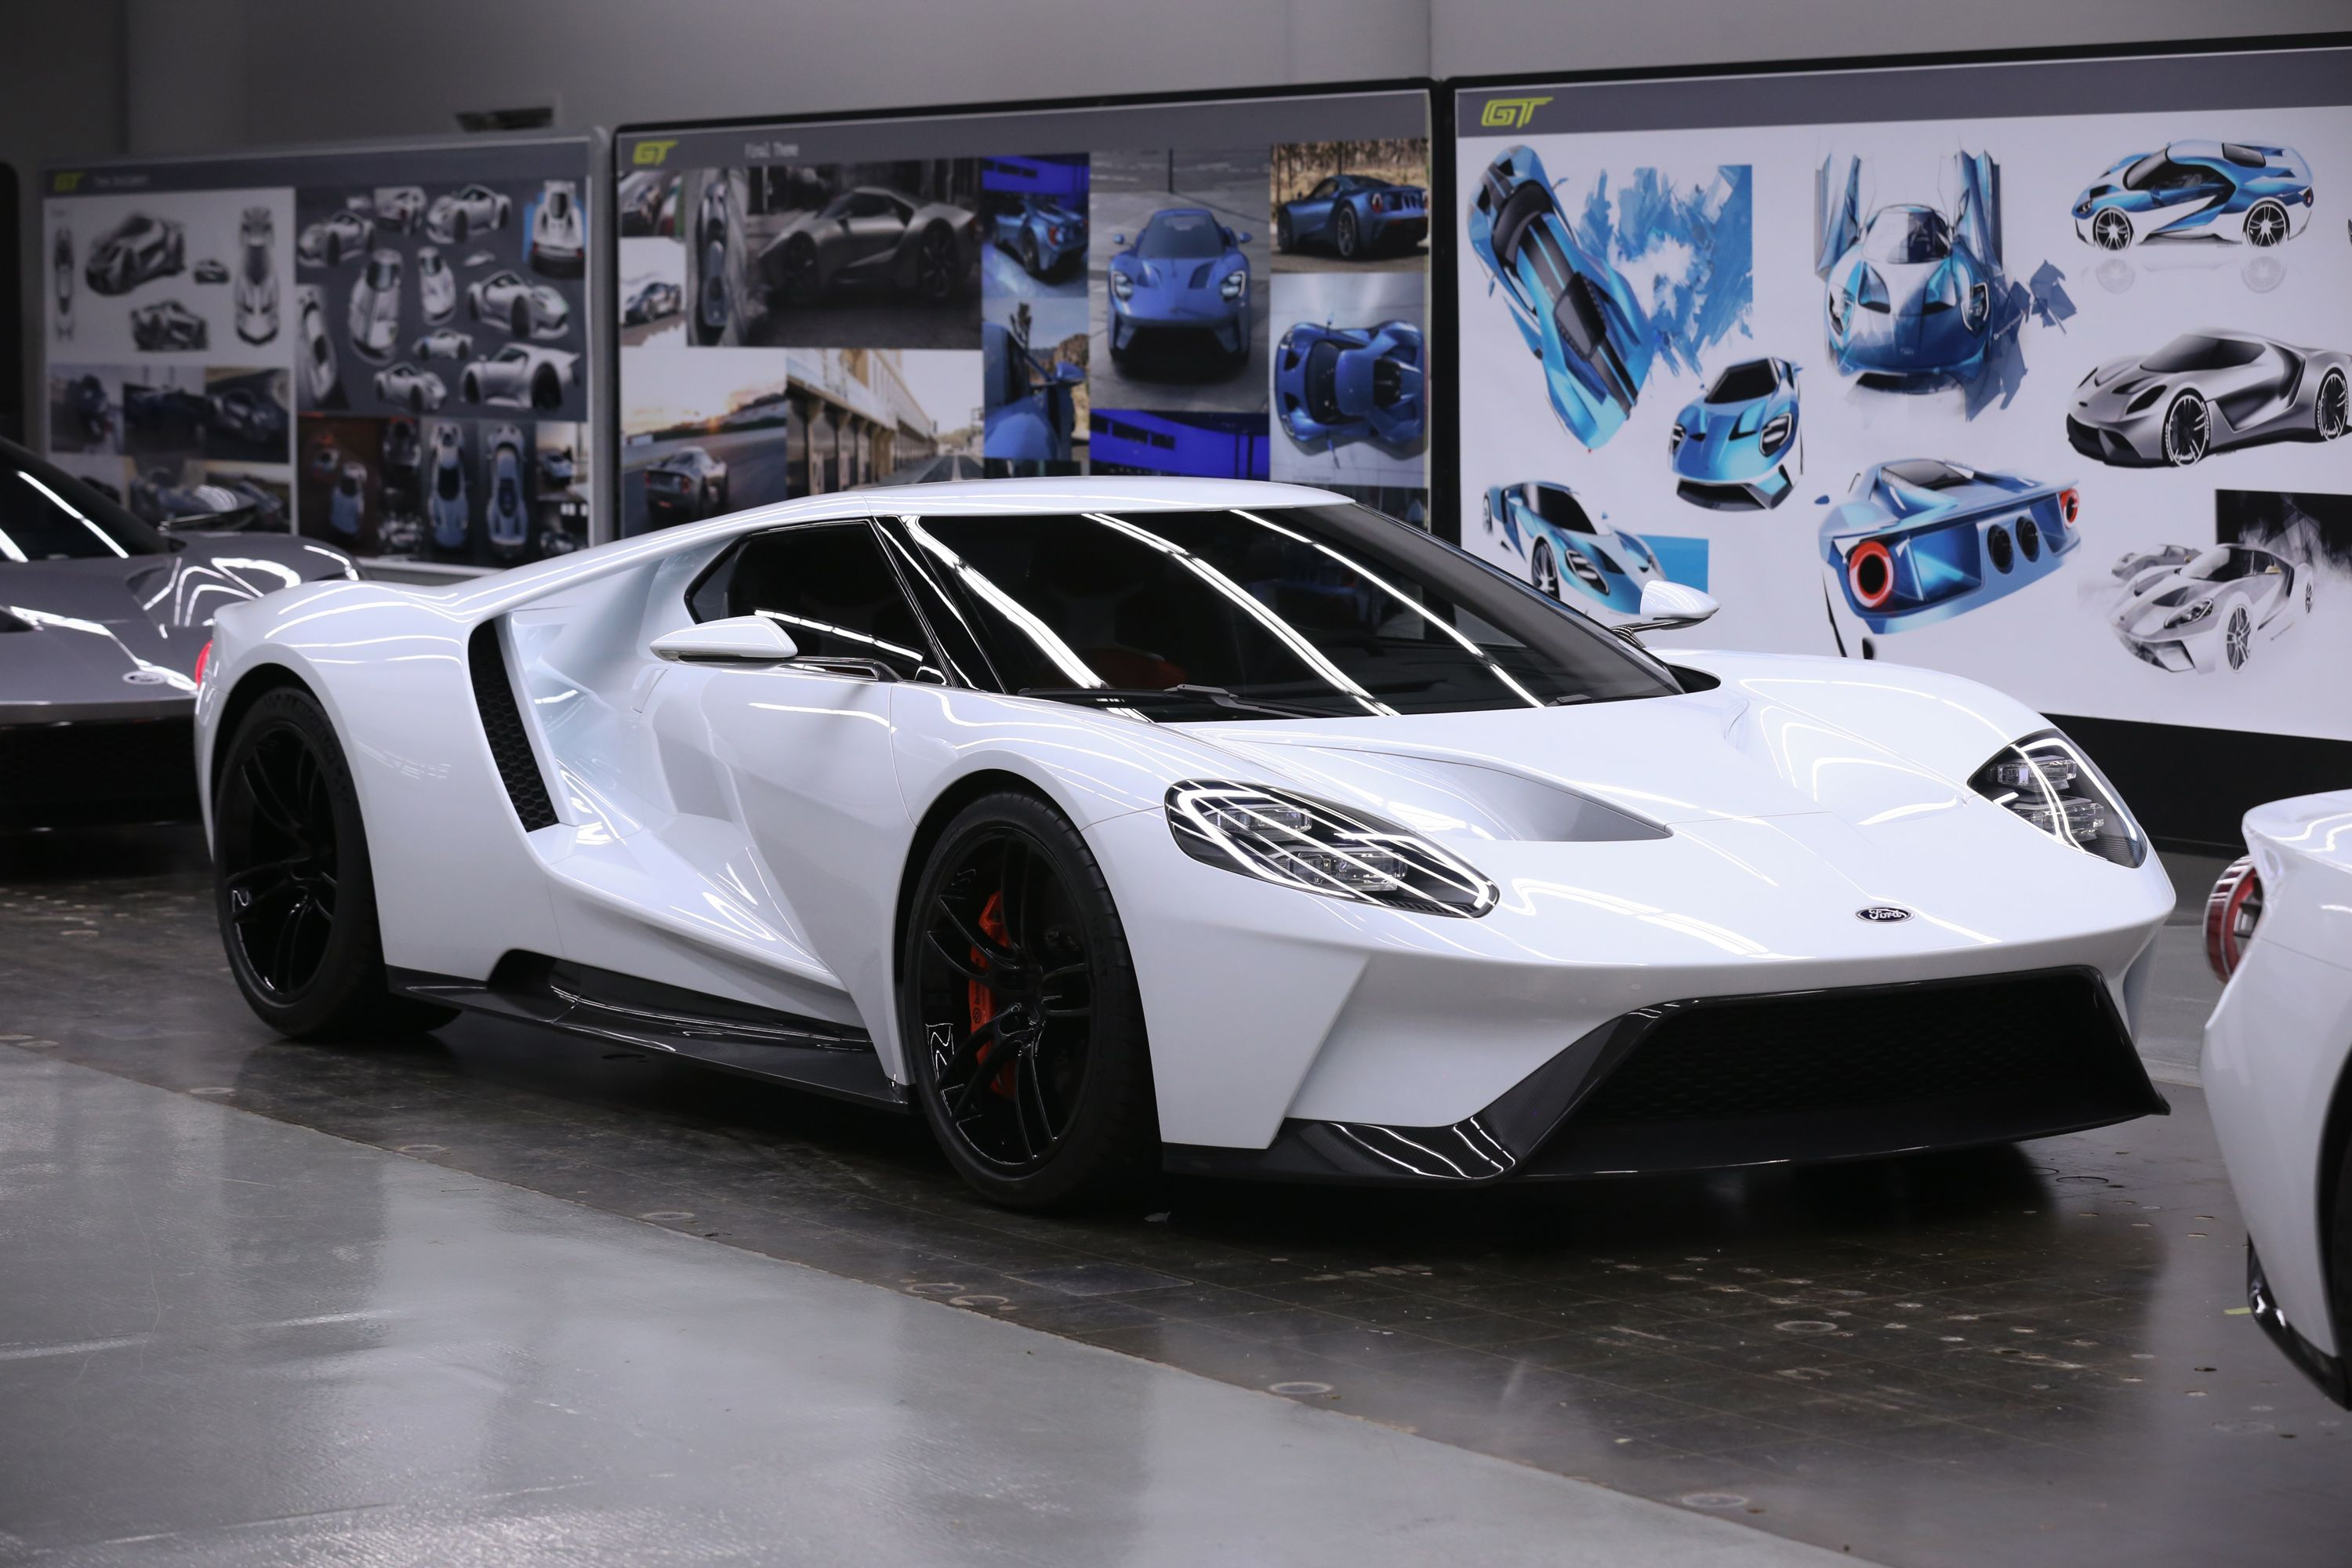 How The New Ford Gt Came To Be The Inside Story Pursuitist